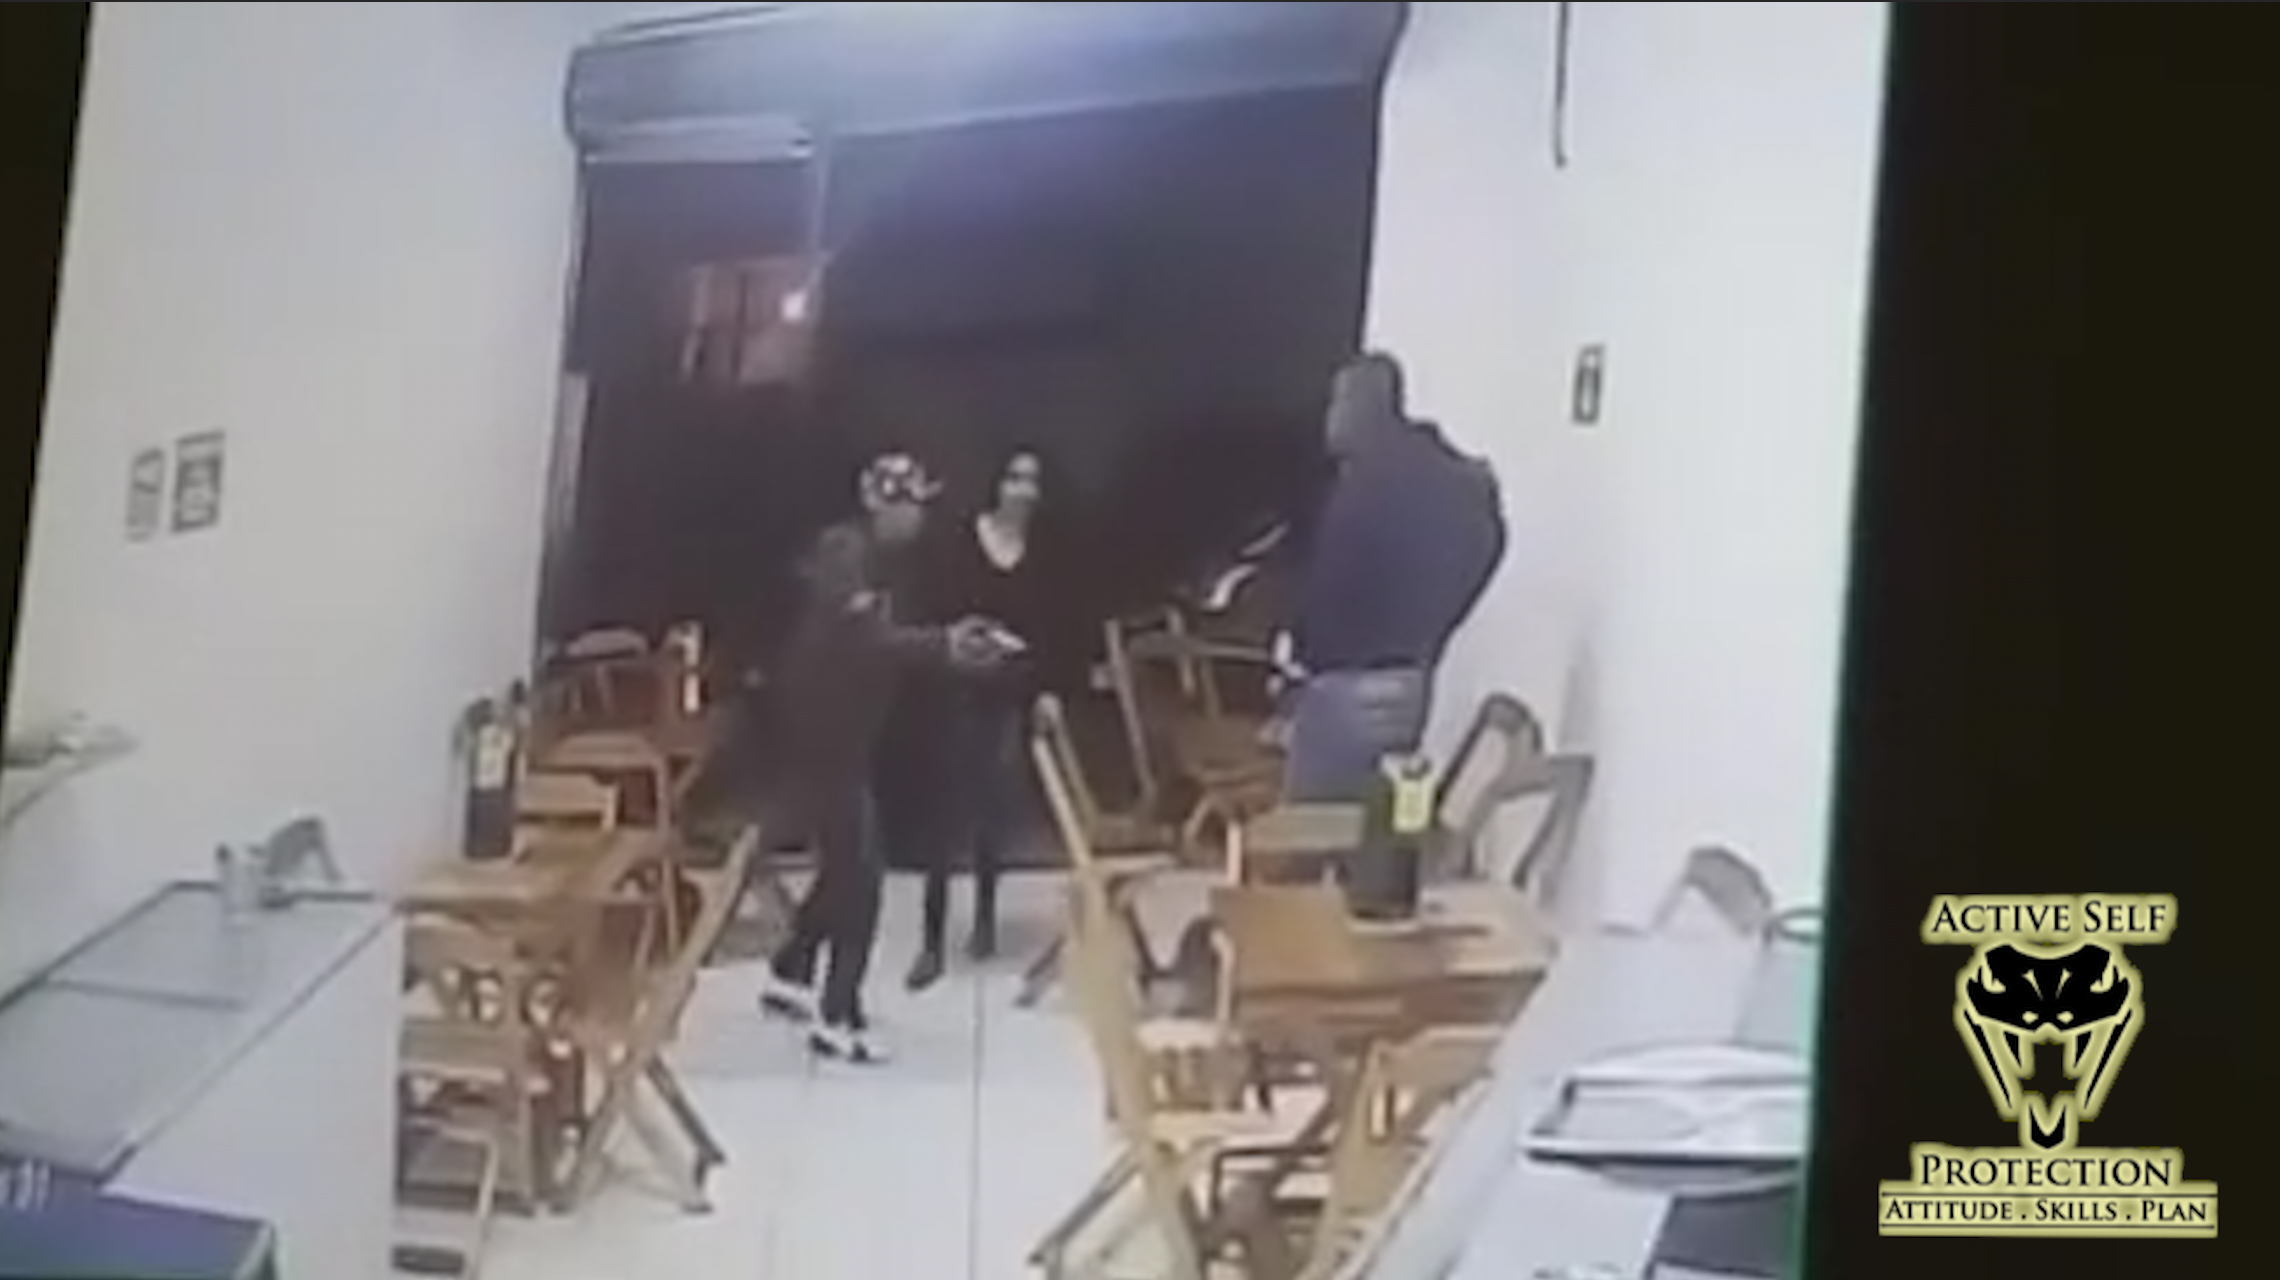 Armed Victim Waits for His Turn Against Armed Robbers